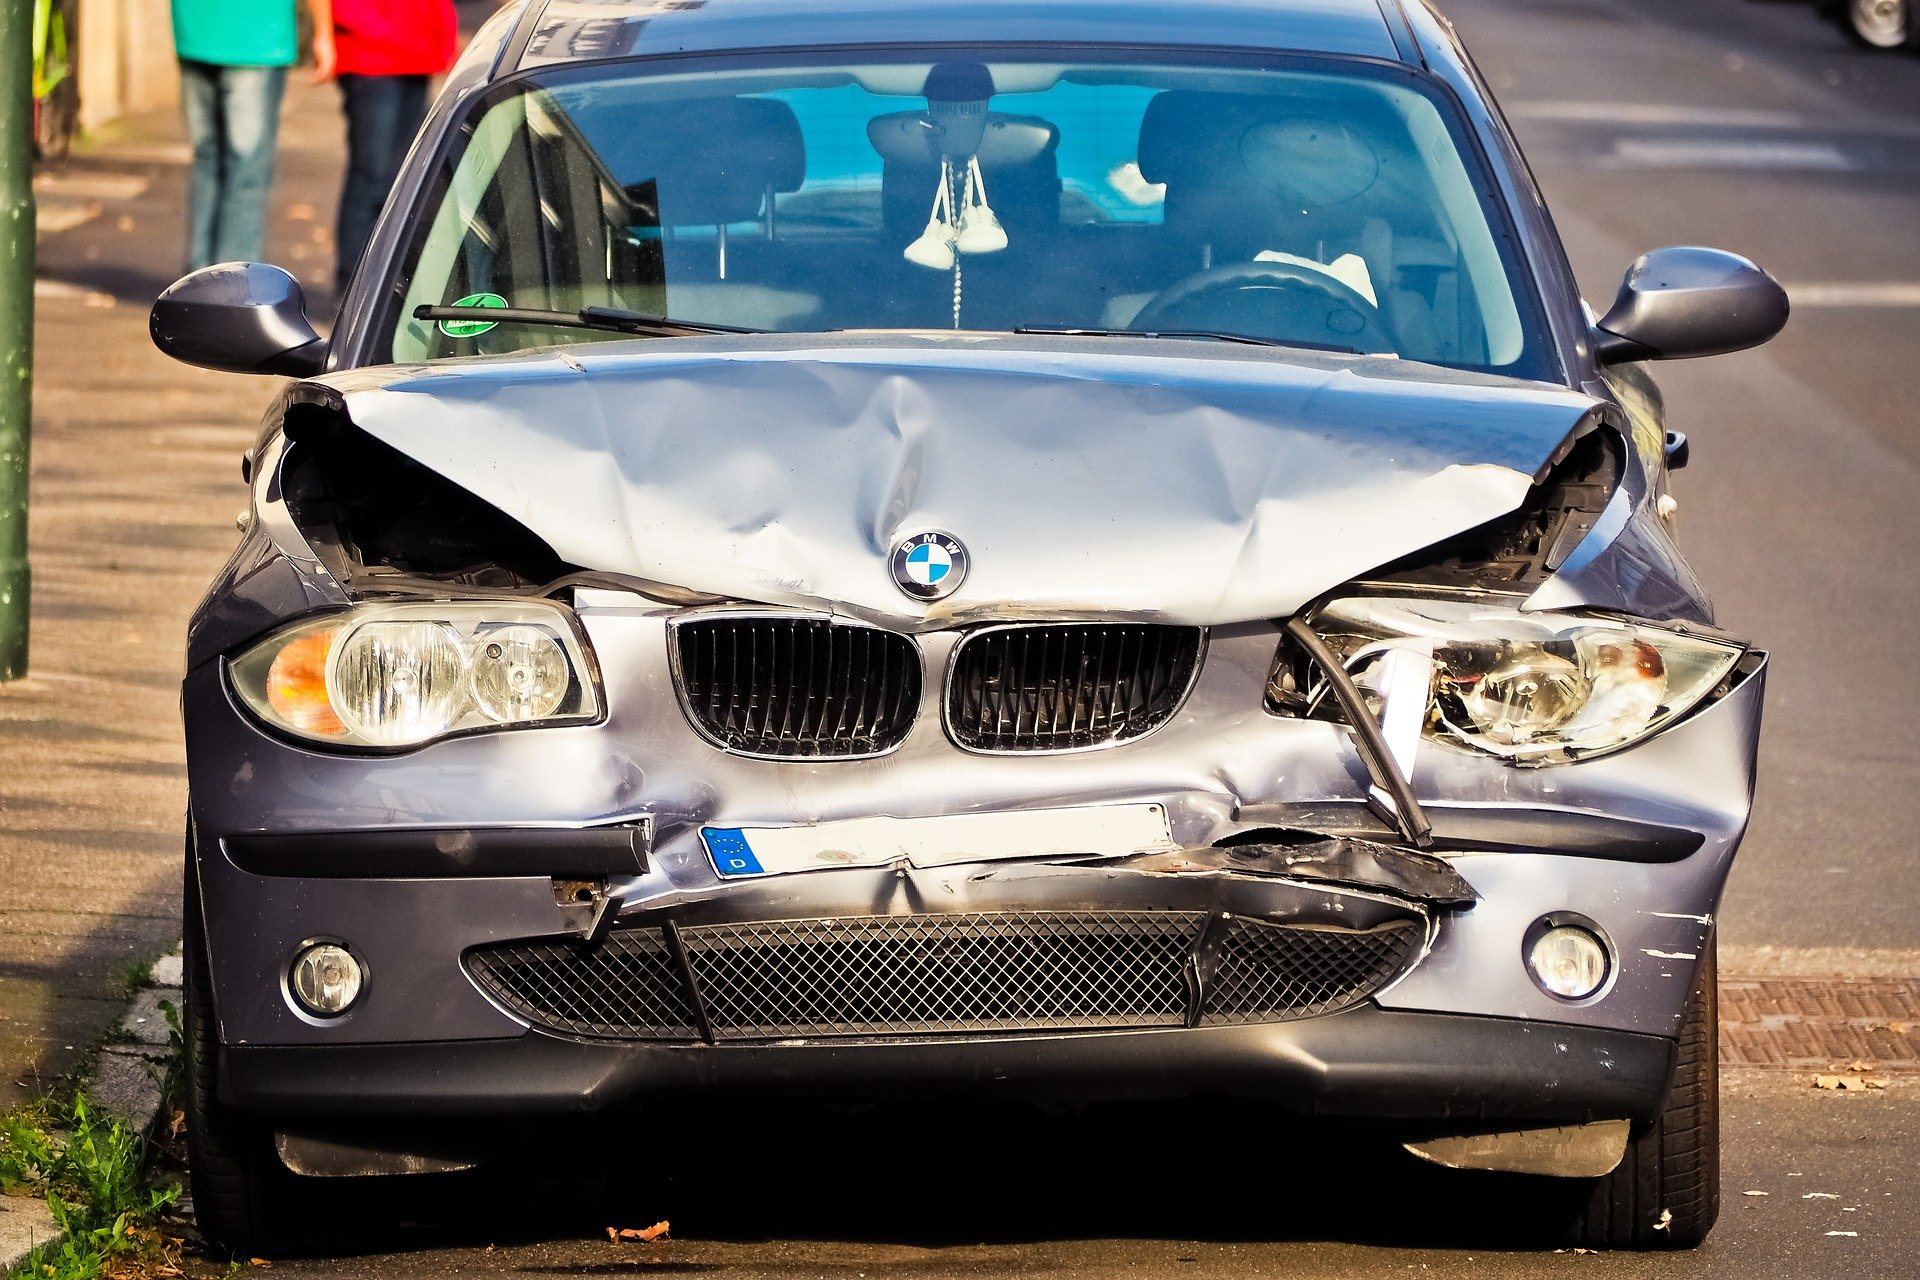 Cash for Scrap Cars and Cash for Accident Cars